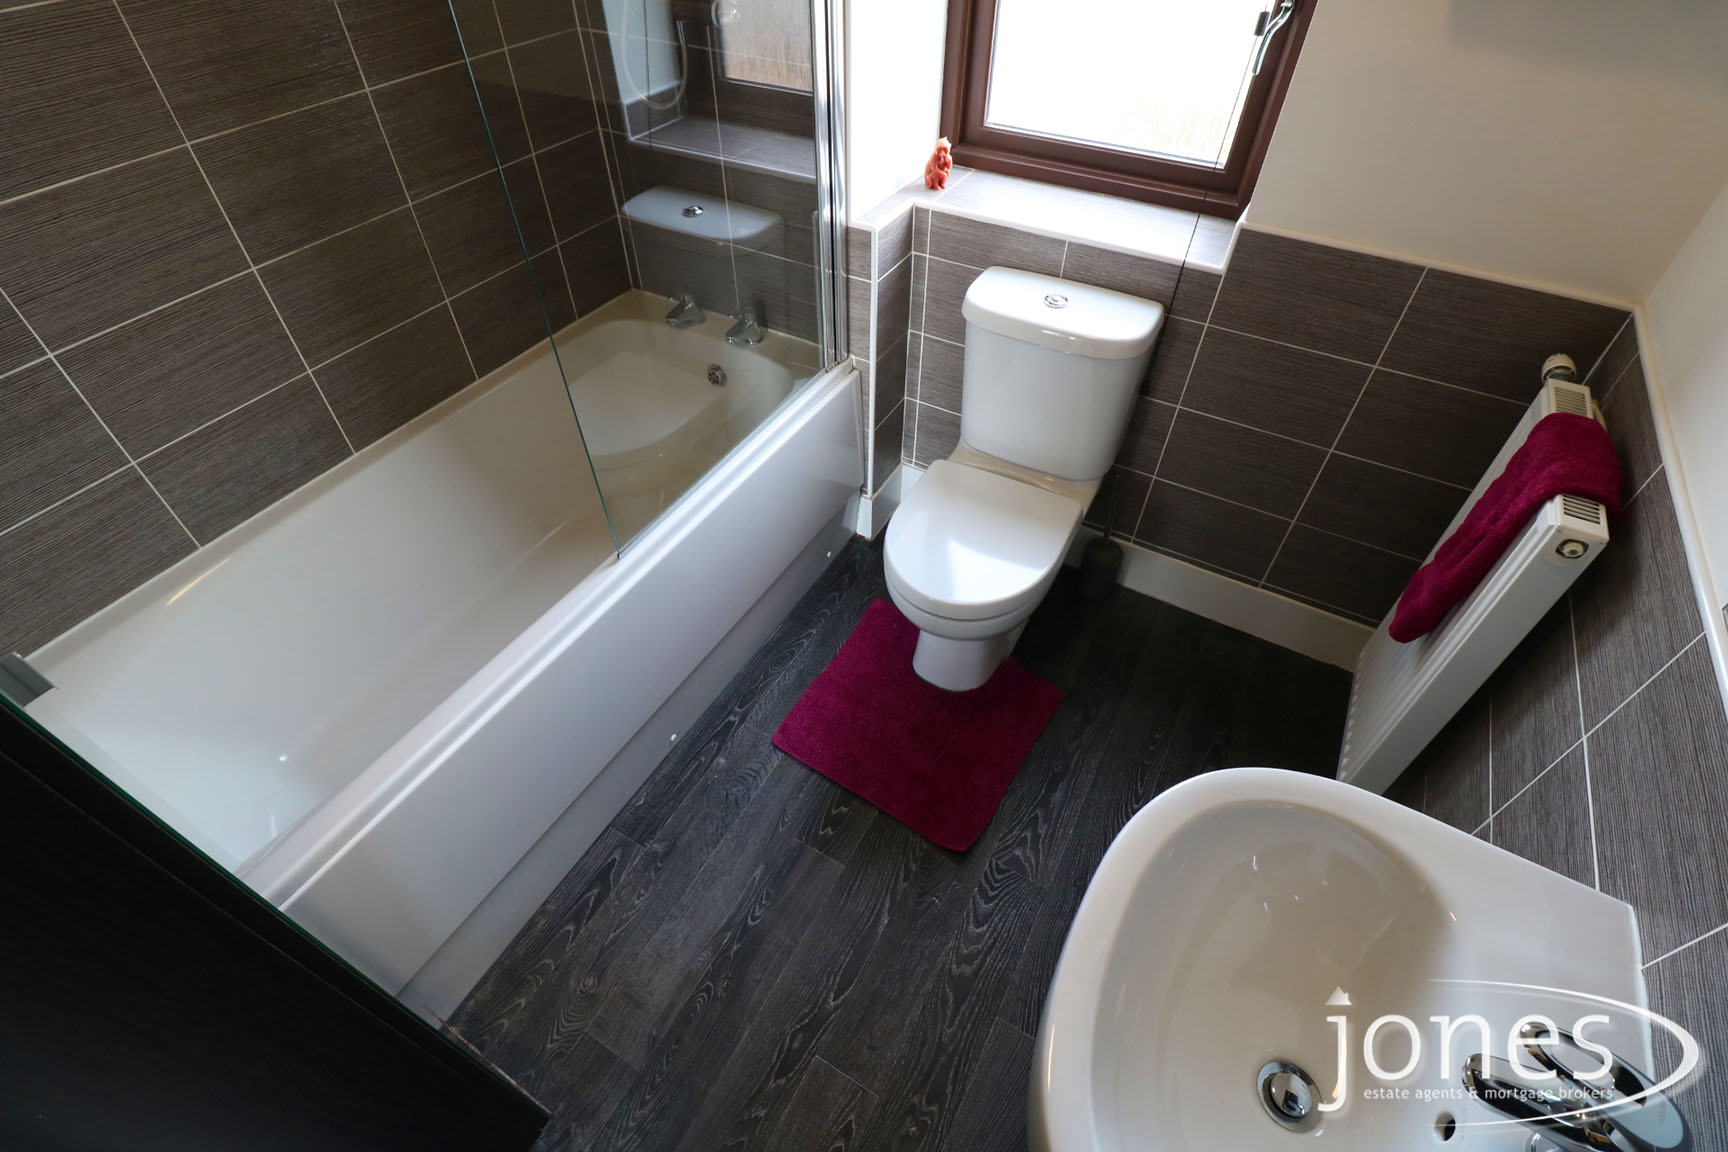 Home for Sale Let - Photo 16 Brookby Court, ,Stockton on Tees,TS18 2SX